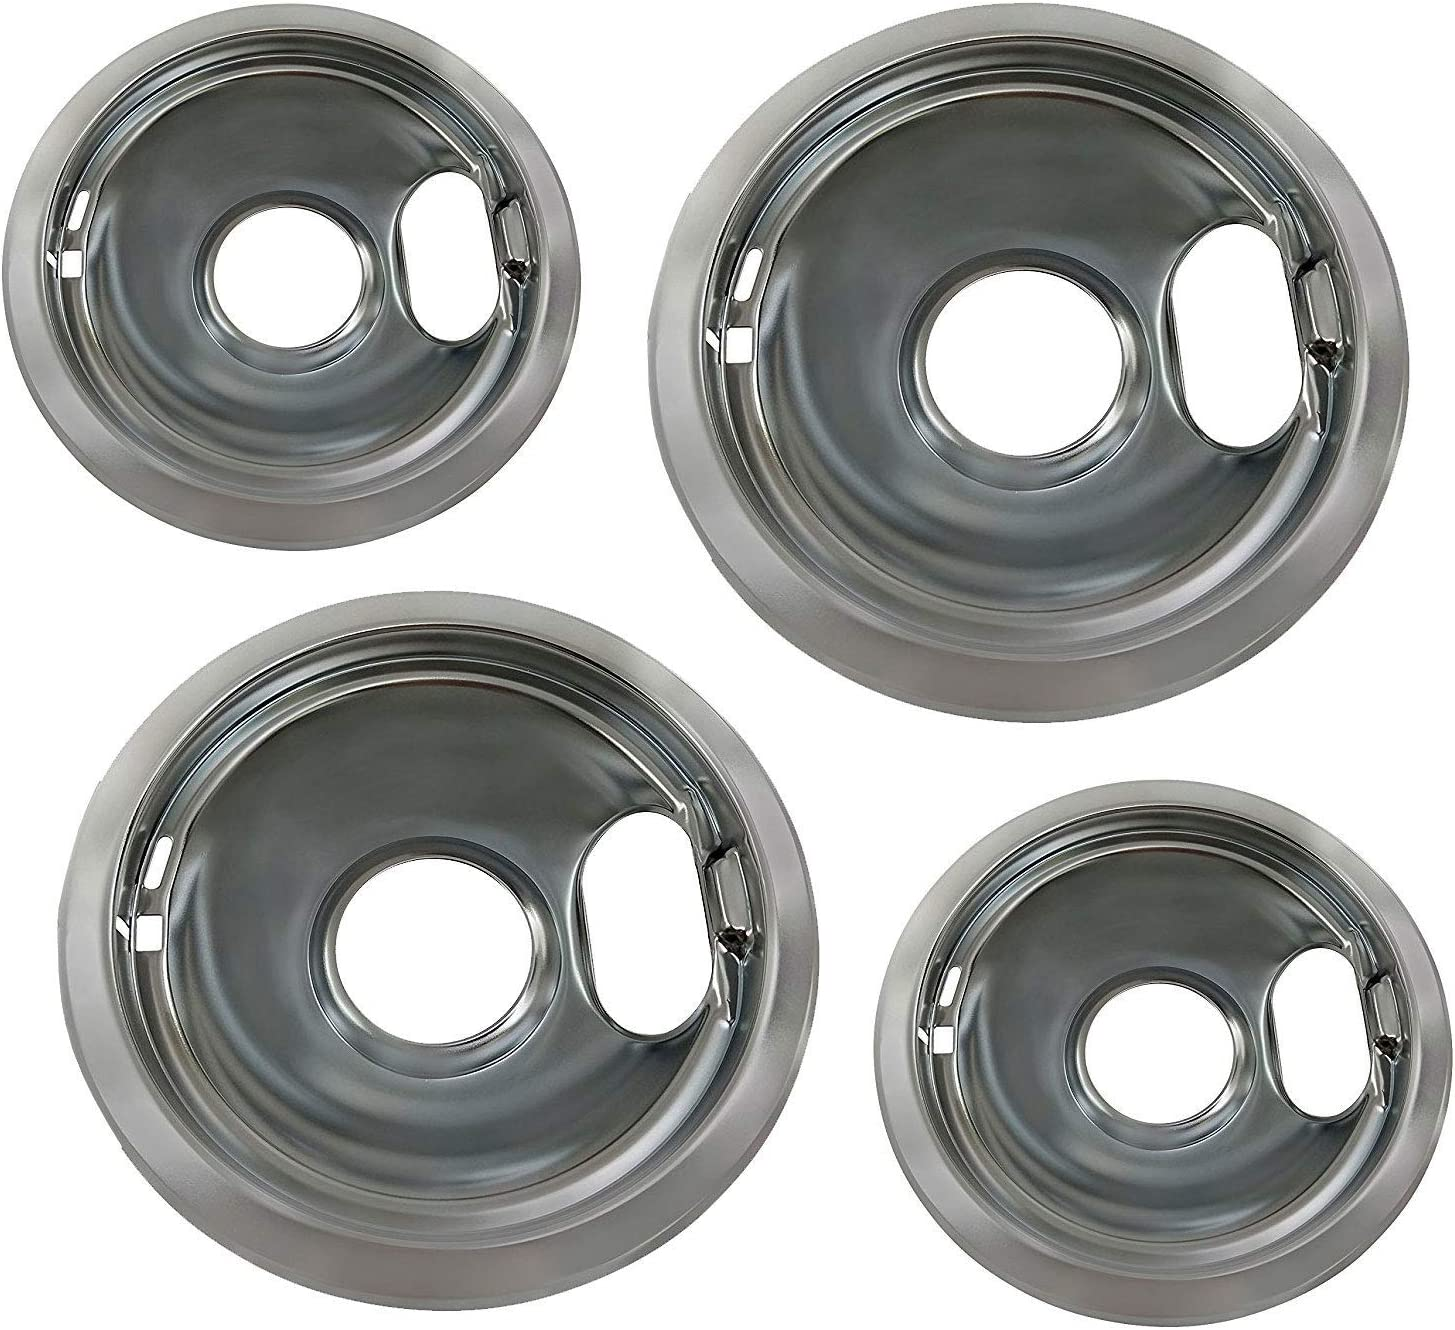 Oven Range Drip Pan Set that works with Whirlpool WFC310S0EW0